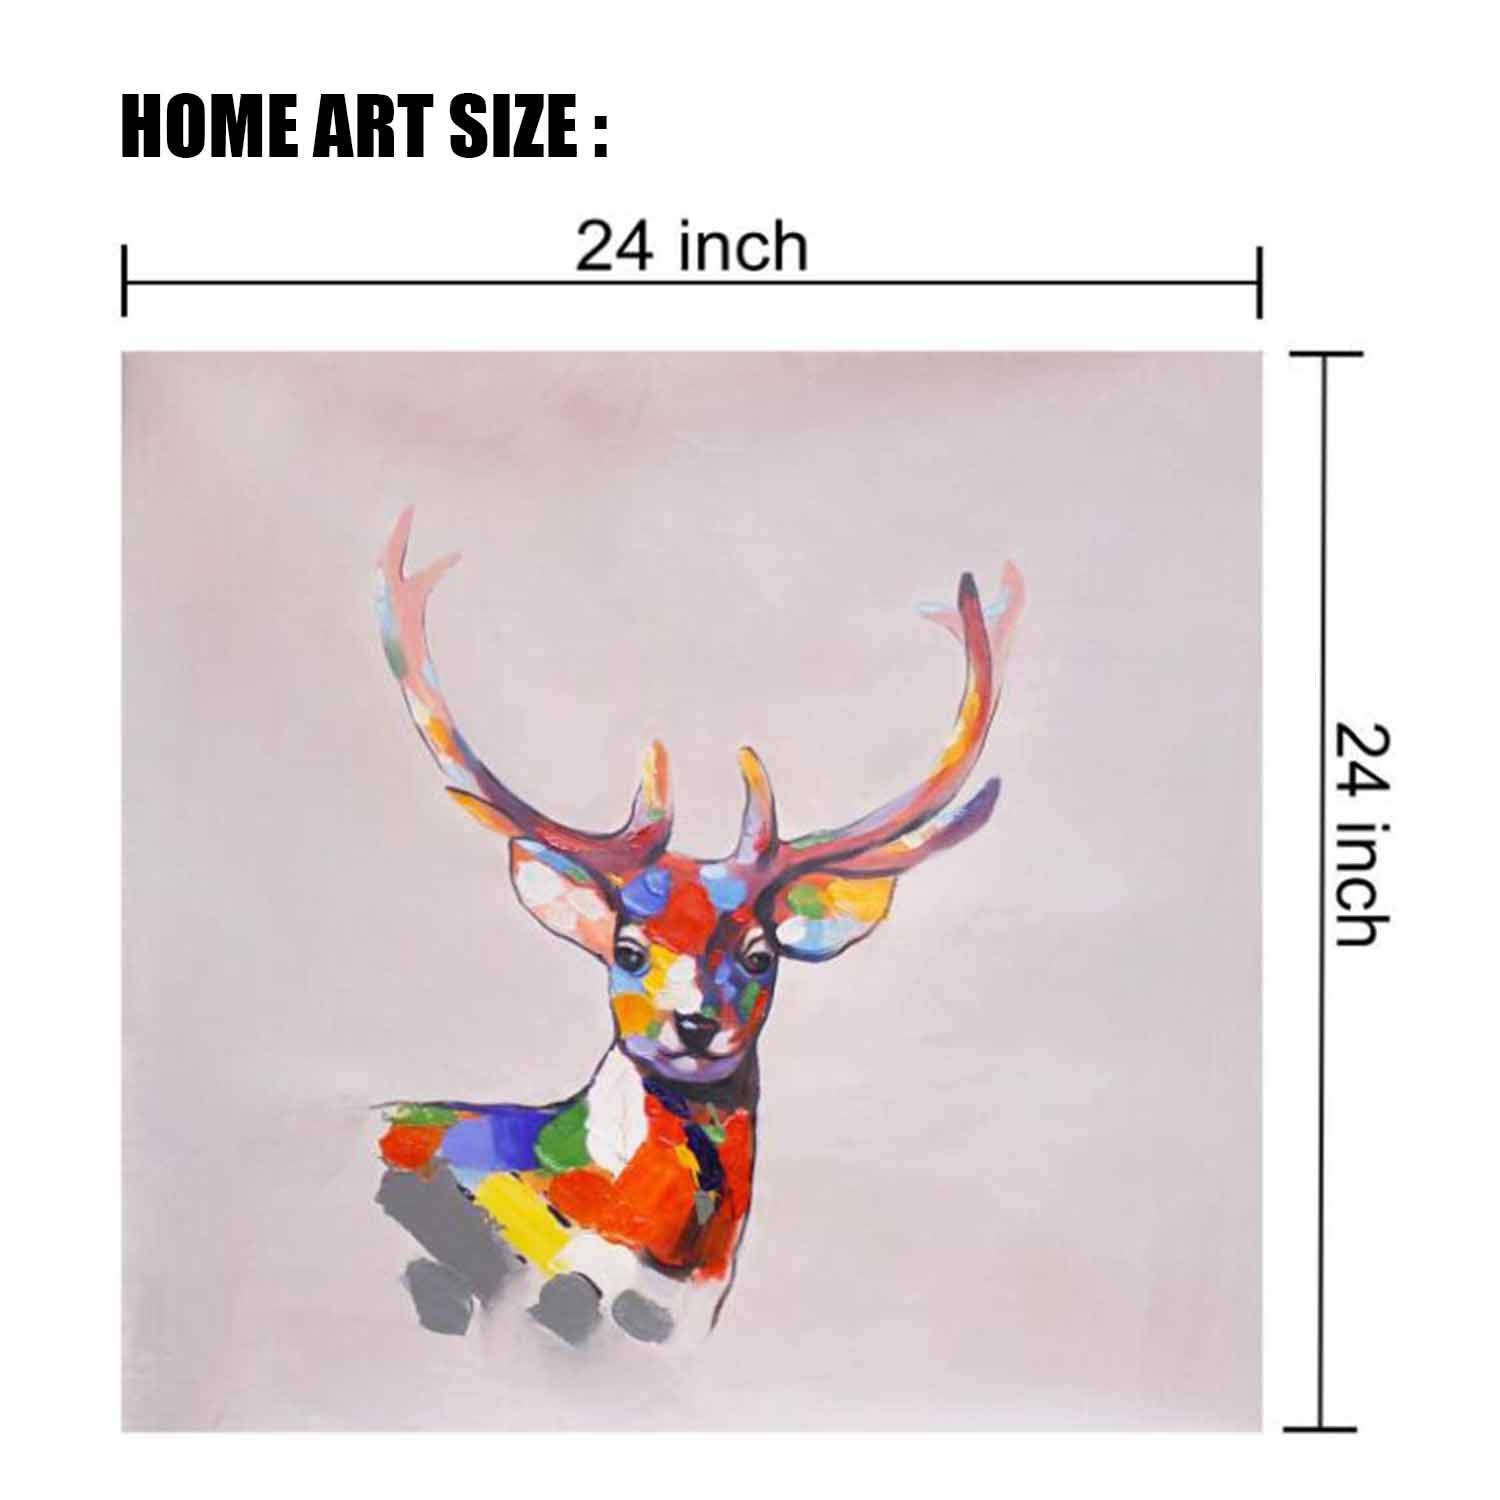 24 x 24 Wall Oil Canvas Painting for Home Decorations HwaGui Art Hand Painted Colour Zebra